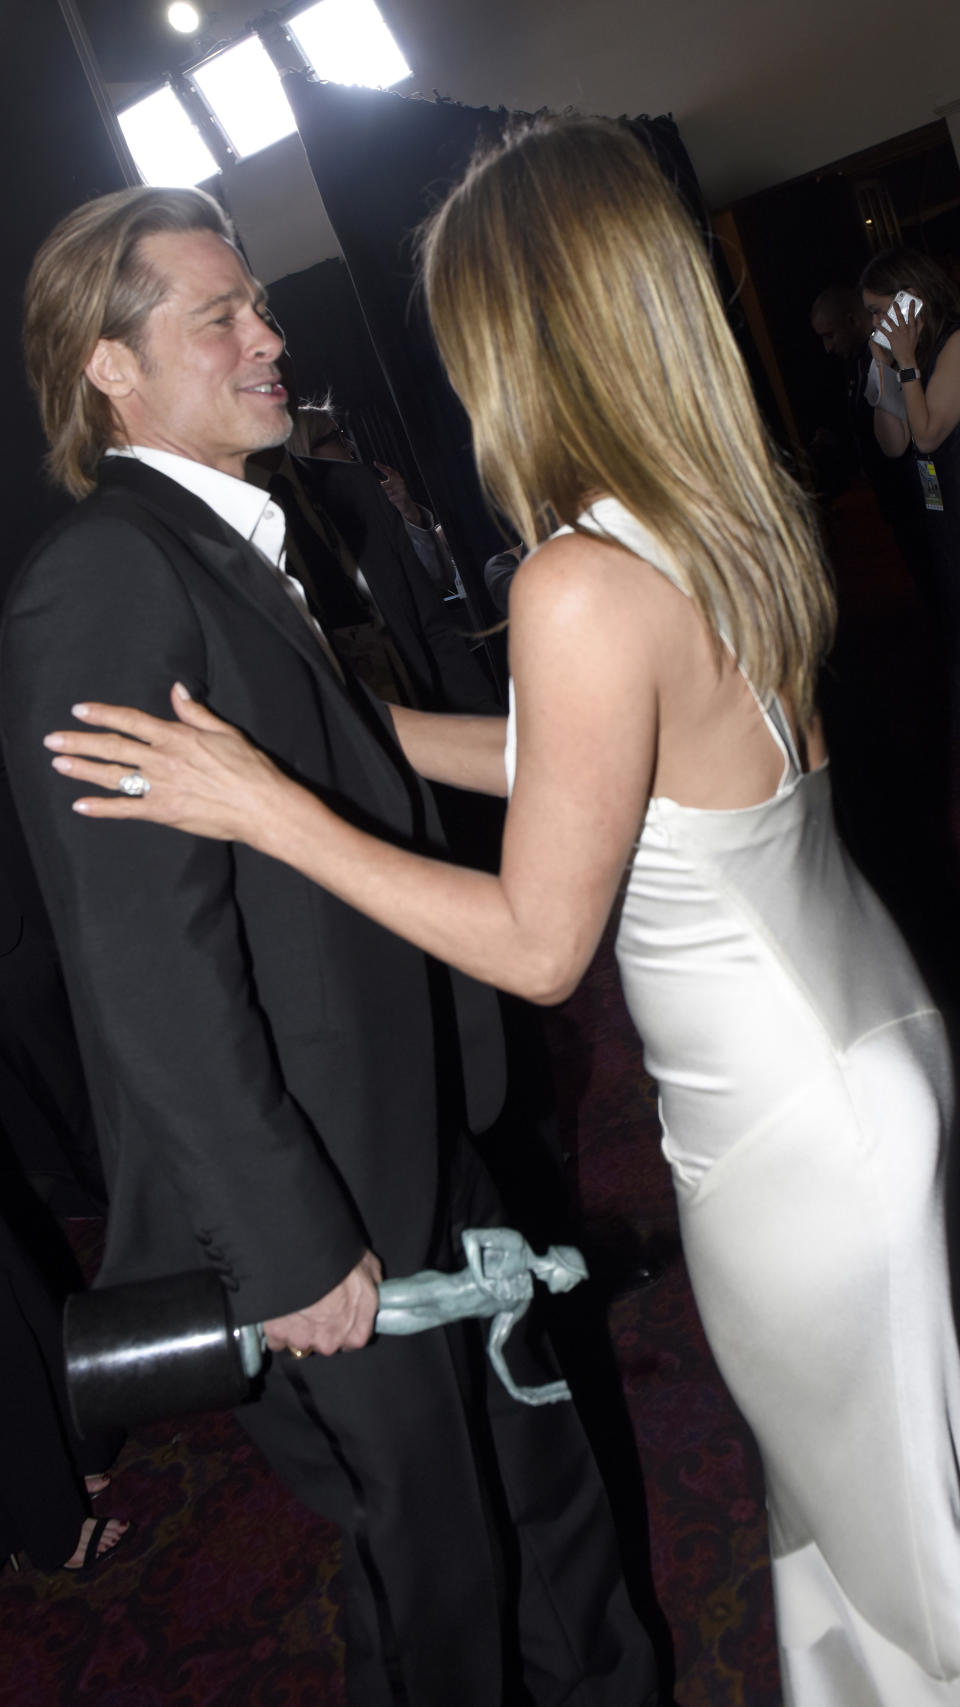 LOS ANGELES, CALIFORNIA - JANUARY 19:  (EDITORS NOTE: This image is a retransmission) Brad Pitt and Jennifer Aniston attend the 26th Annual Screen Actors Guild Awards at The Shrine Auditorium on January 19, 2020 in Los Angeles, California.  (Photo by Vivien Killilea/Getty Images for SAG-AFTRA)